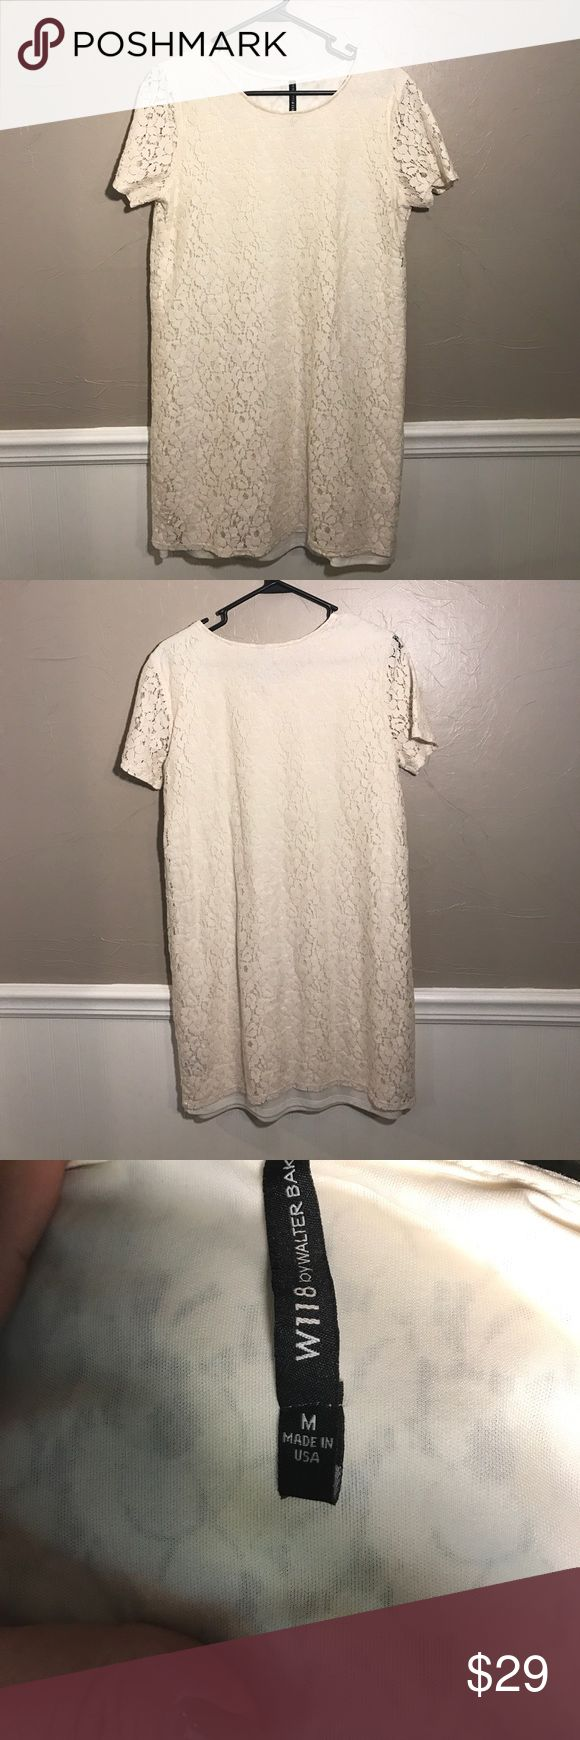 W118 by Walter Baker Ivory Lace shift dress W118 By Walter Baker Ivory Lace lined Shift dress with short sleeves! Perfect for Spring Summer, Bridal shower or graduation dress as well.  Excellent Pre-loved Condition no trades! W118 by Walter Baker Dresses